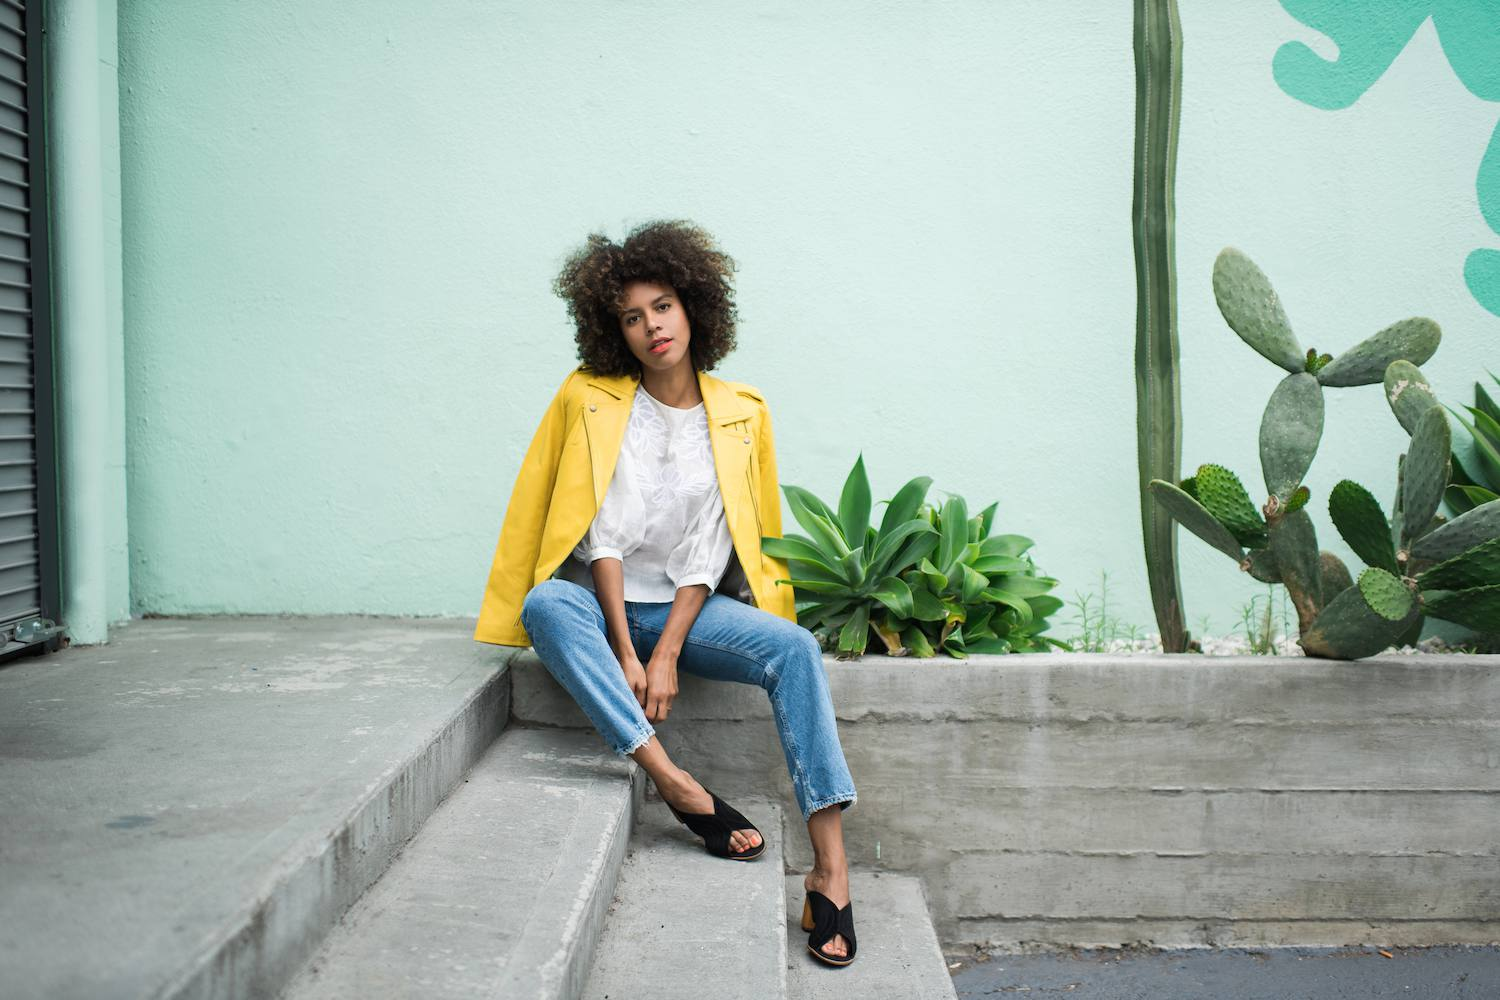 Woman in yellow leather jacket and jeans